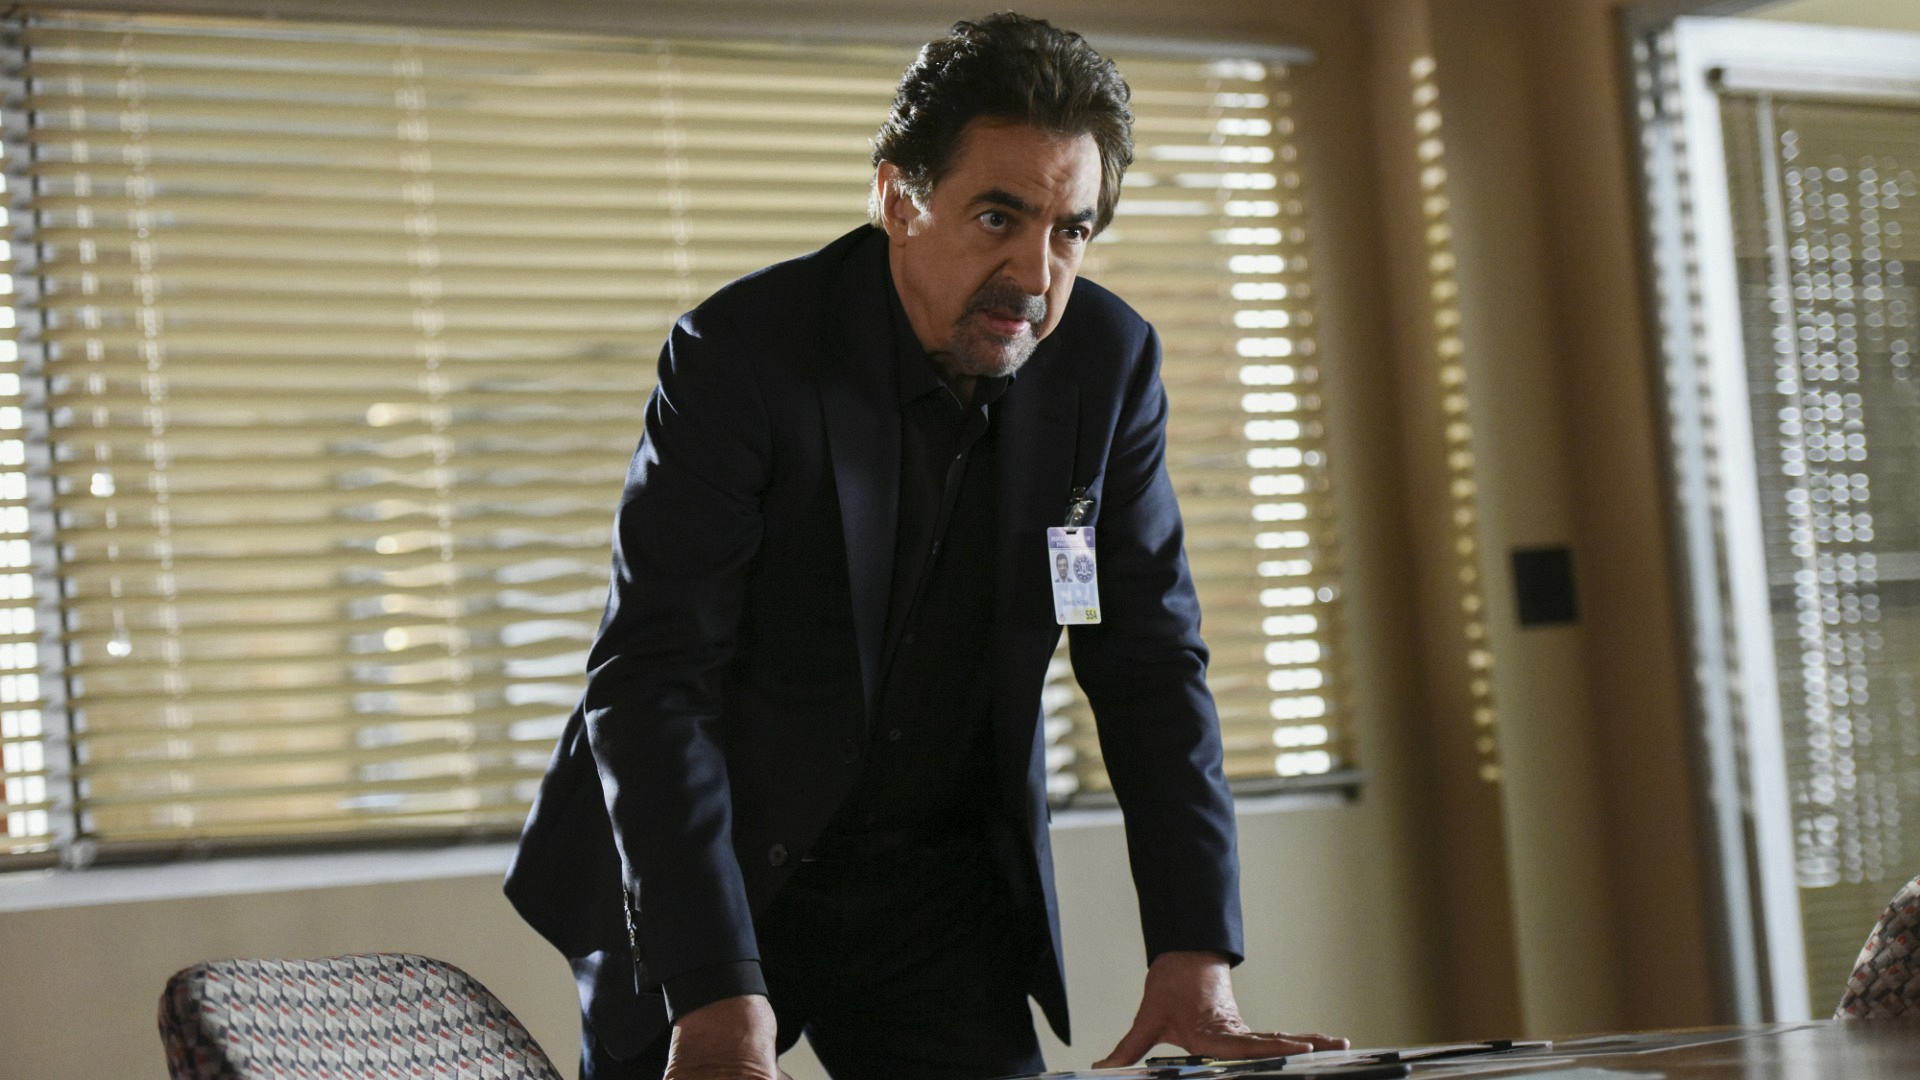 SSA David Rossi isn't pulling any punches.